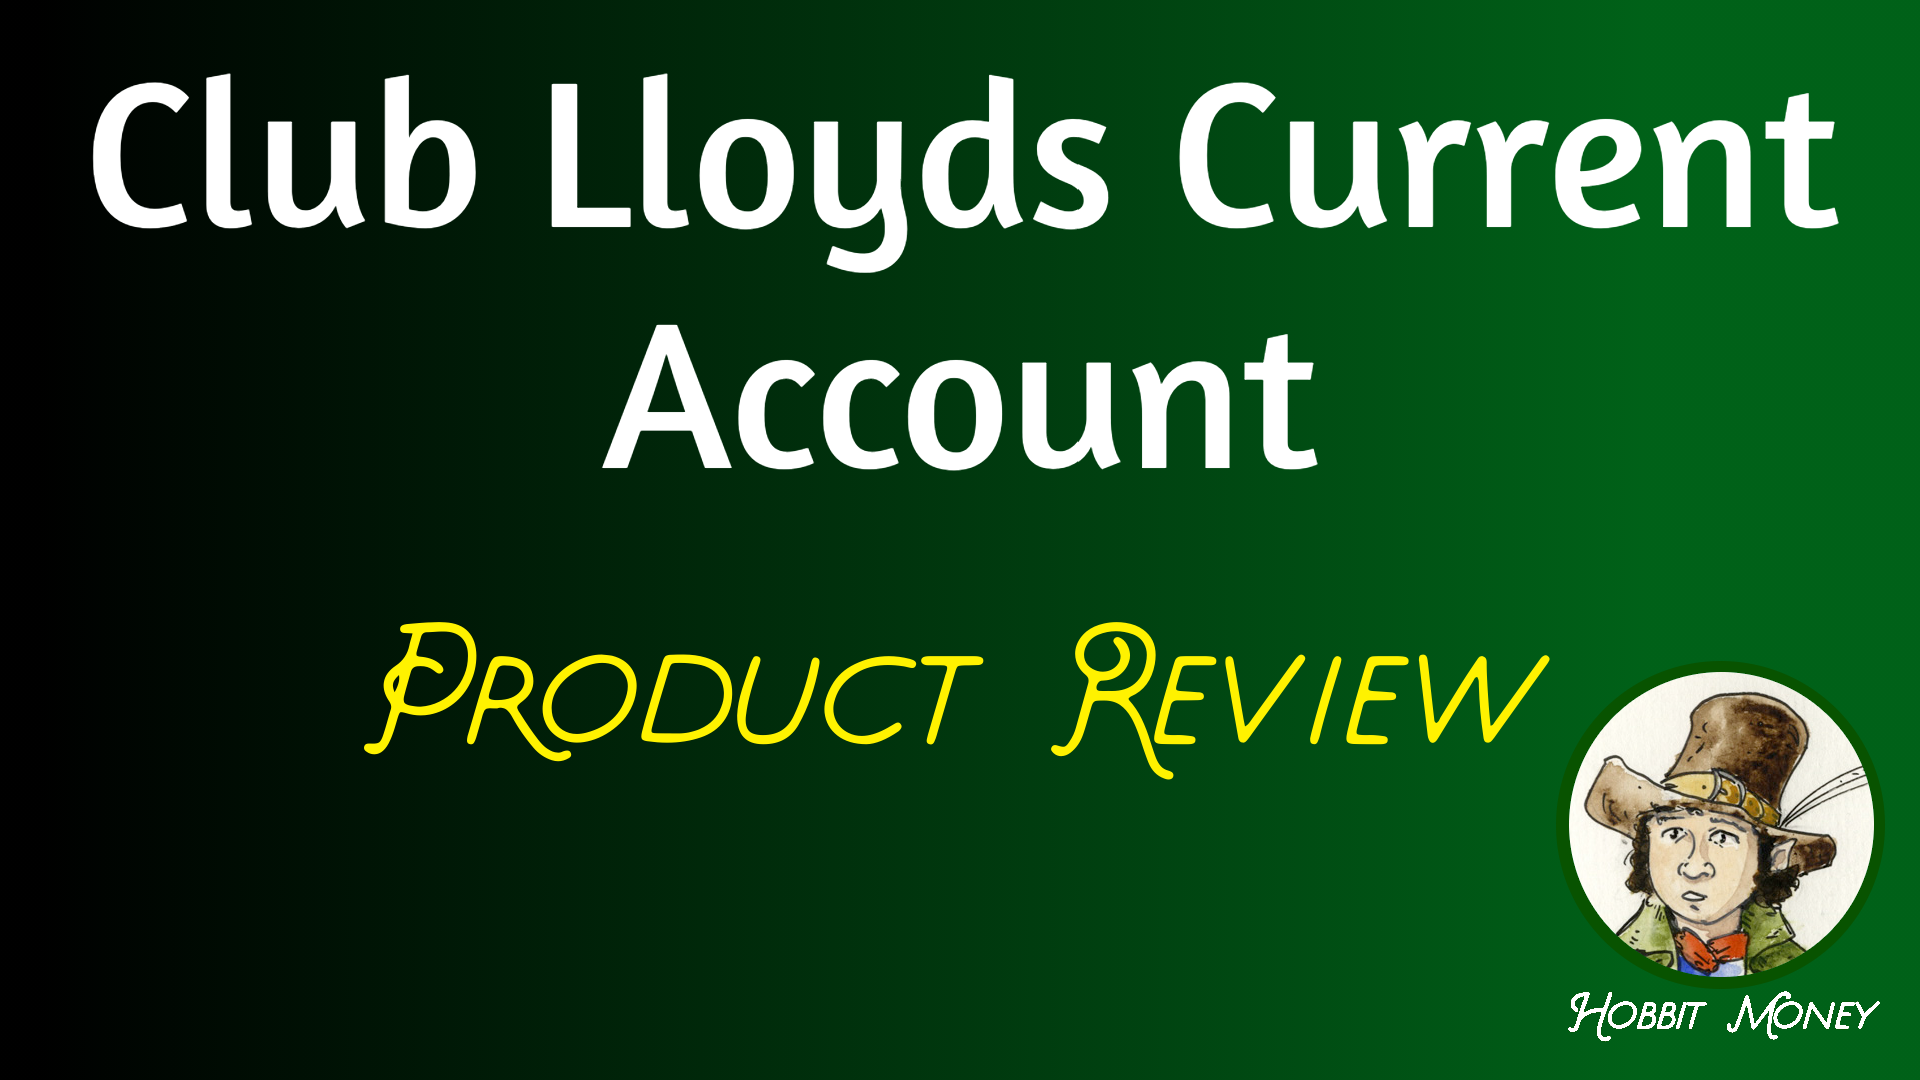 Club Lloyds Current Account Product Review - Hobbit Money